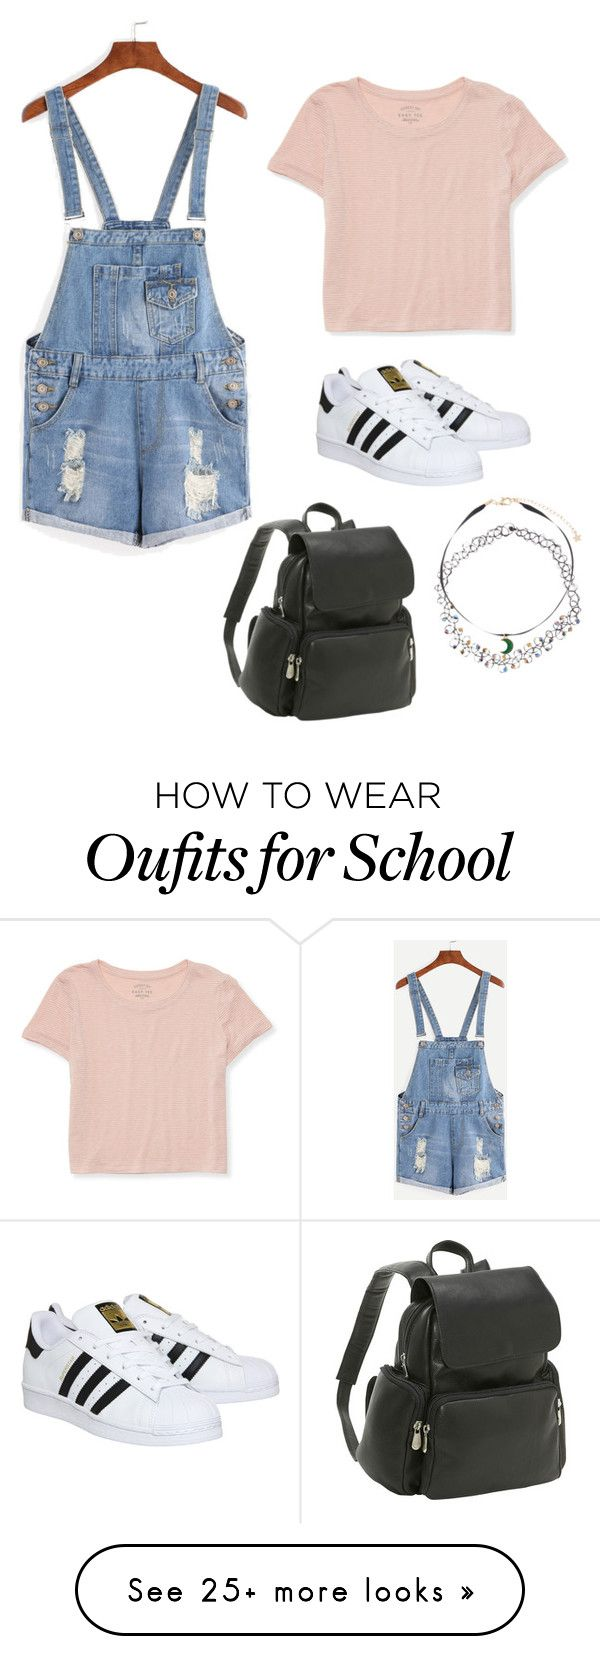 """California School Day."" by jordanhanlon on Polyvore featuring Aéropostale, adidas, Le Donne and Monsoon"